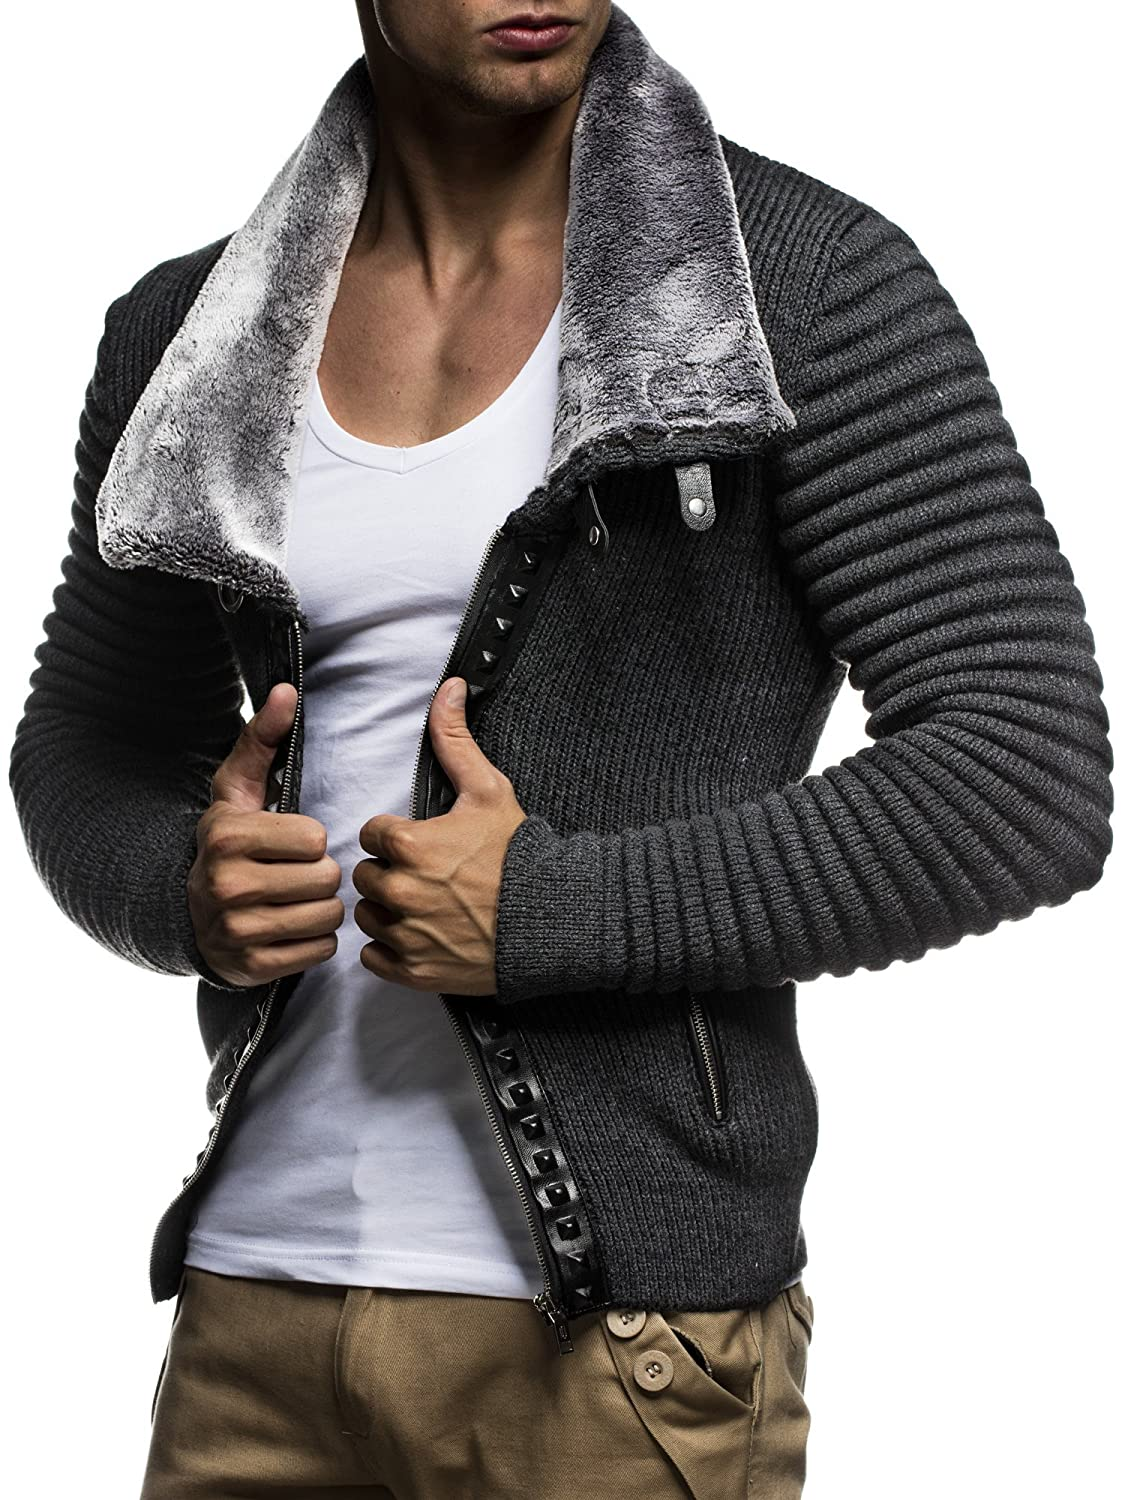 Leif nelon LN5165 Men's Cardigan With Stud Details and Zip Front ...